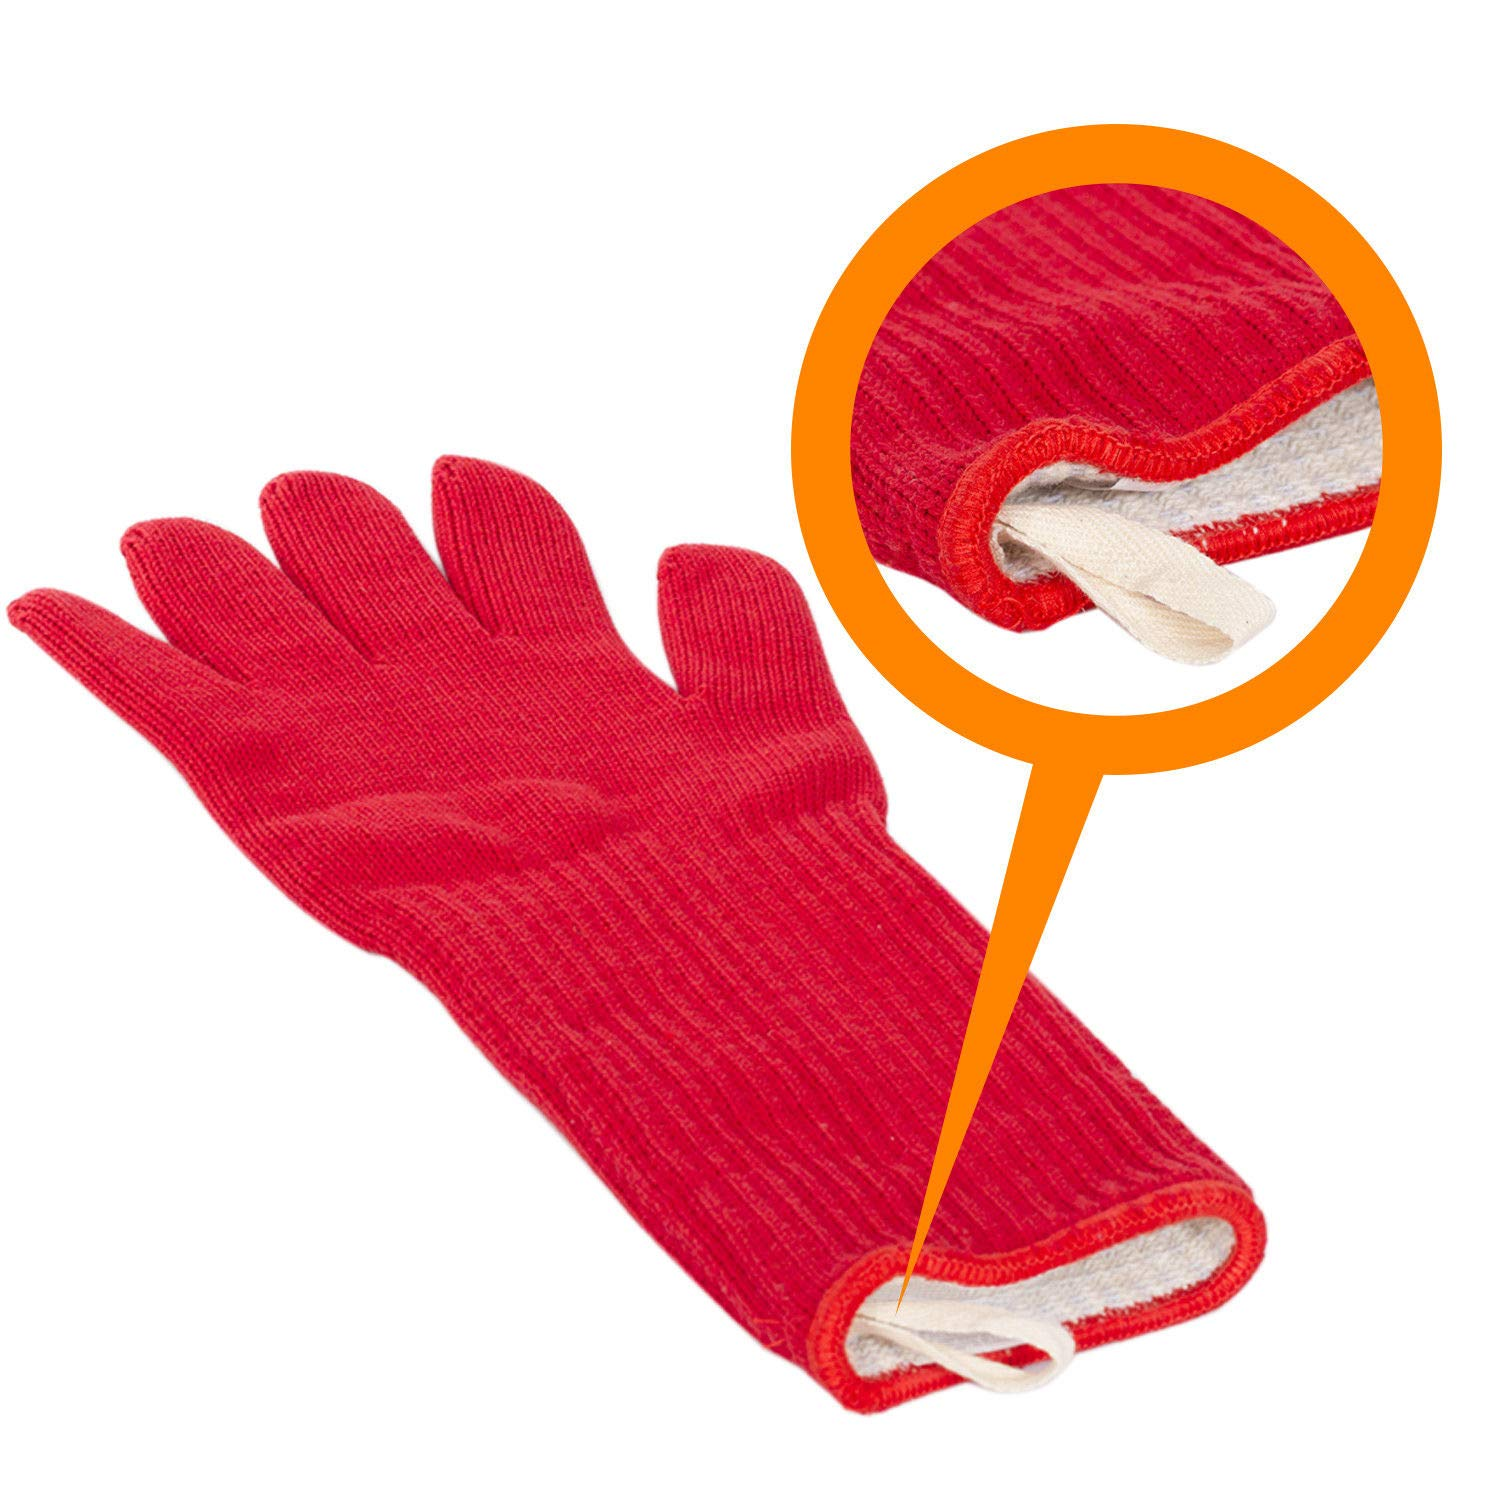 Super Oven Glove Extra Thick Extra Long Heat Resistant Oven Mitt Pot Holder Red